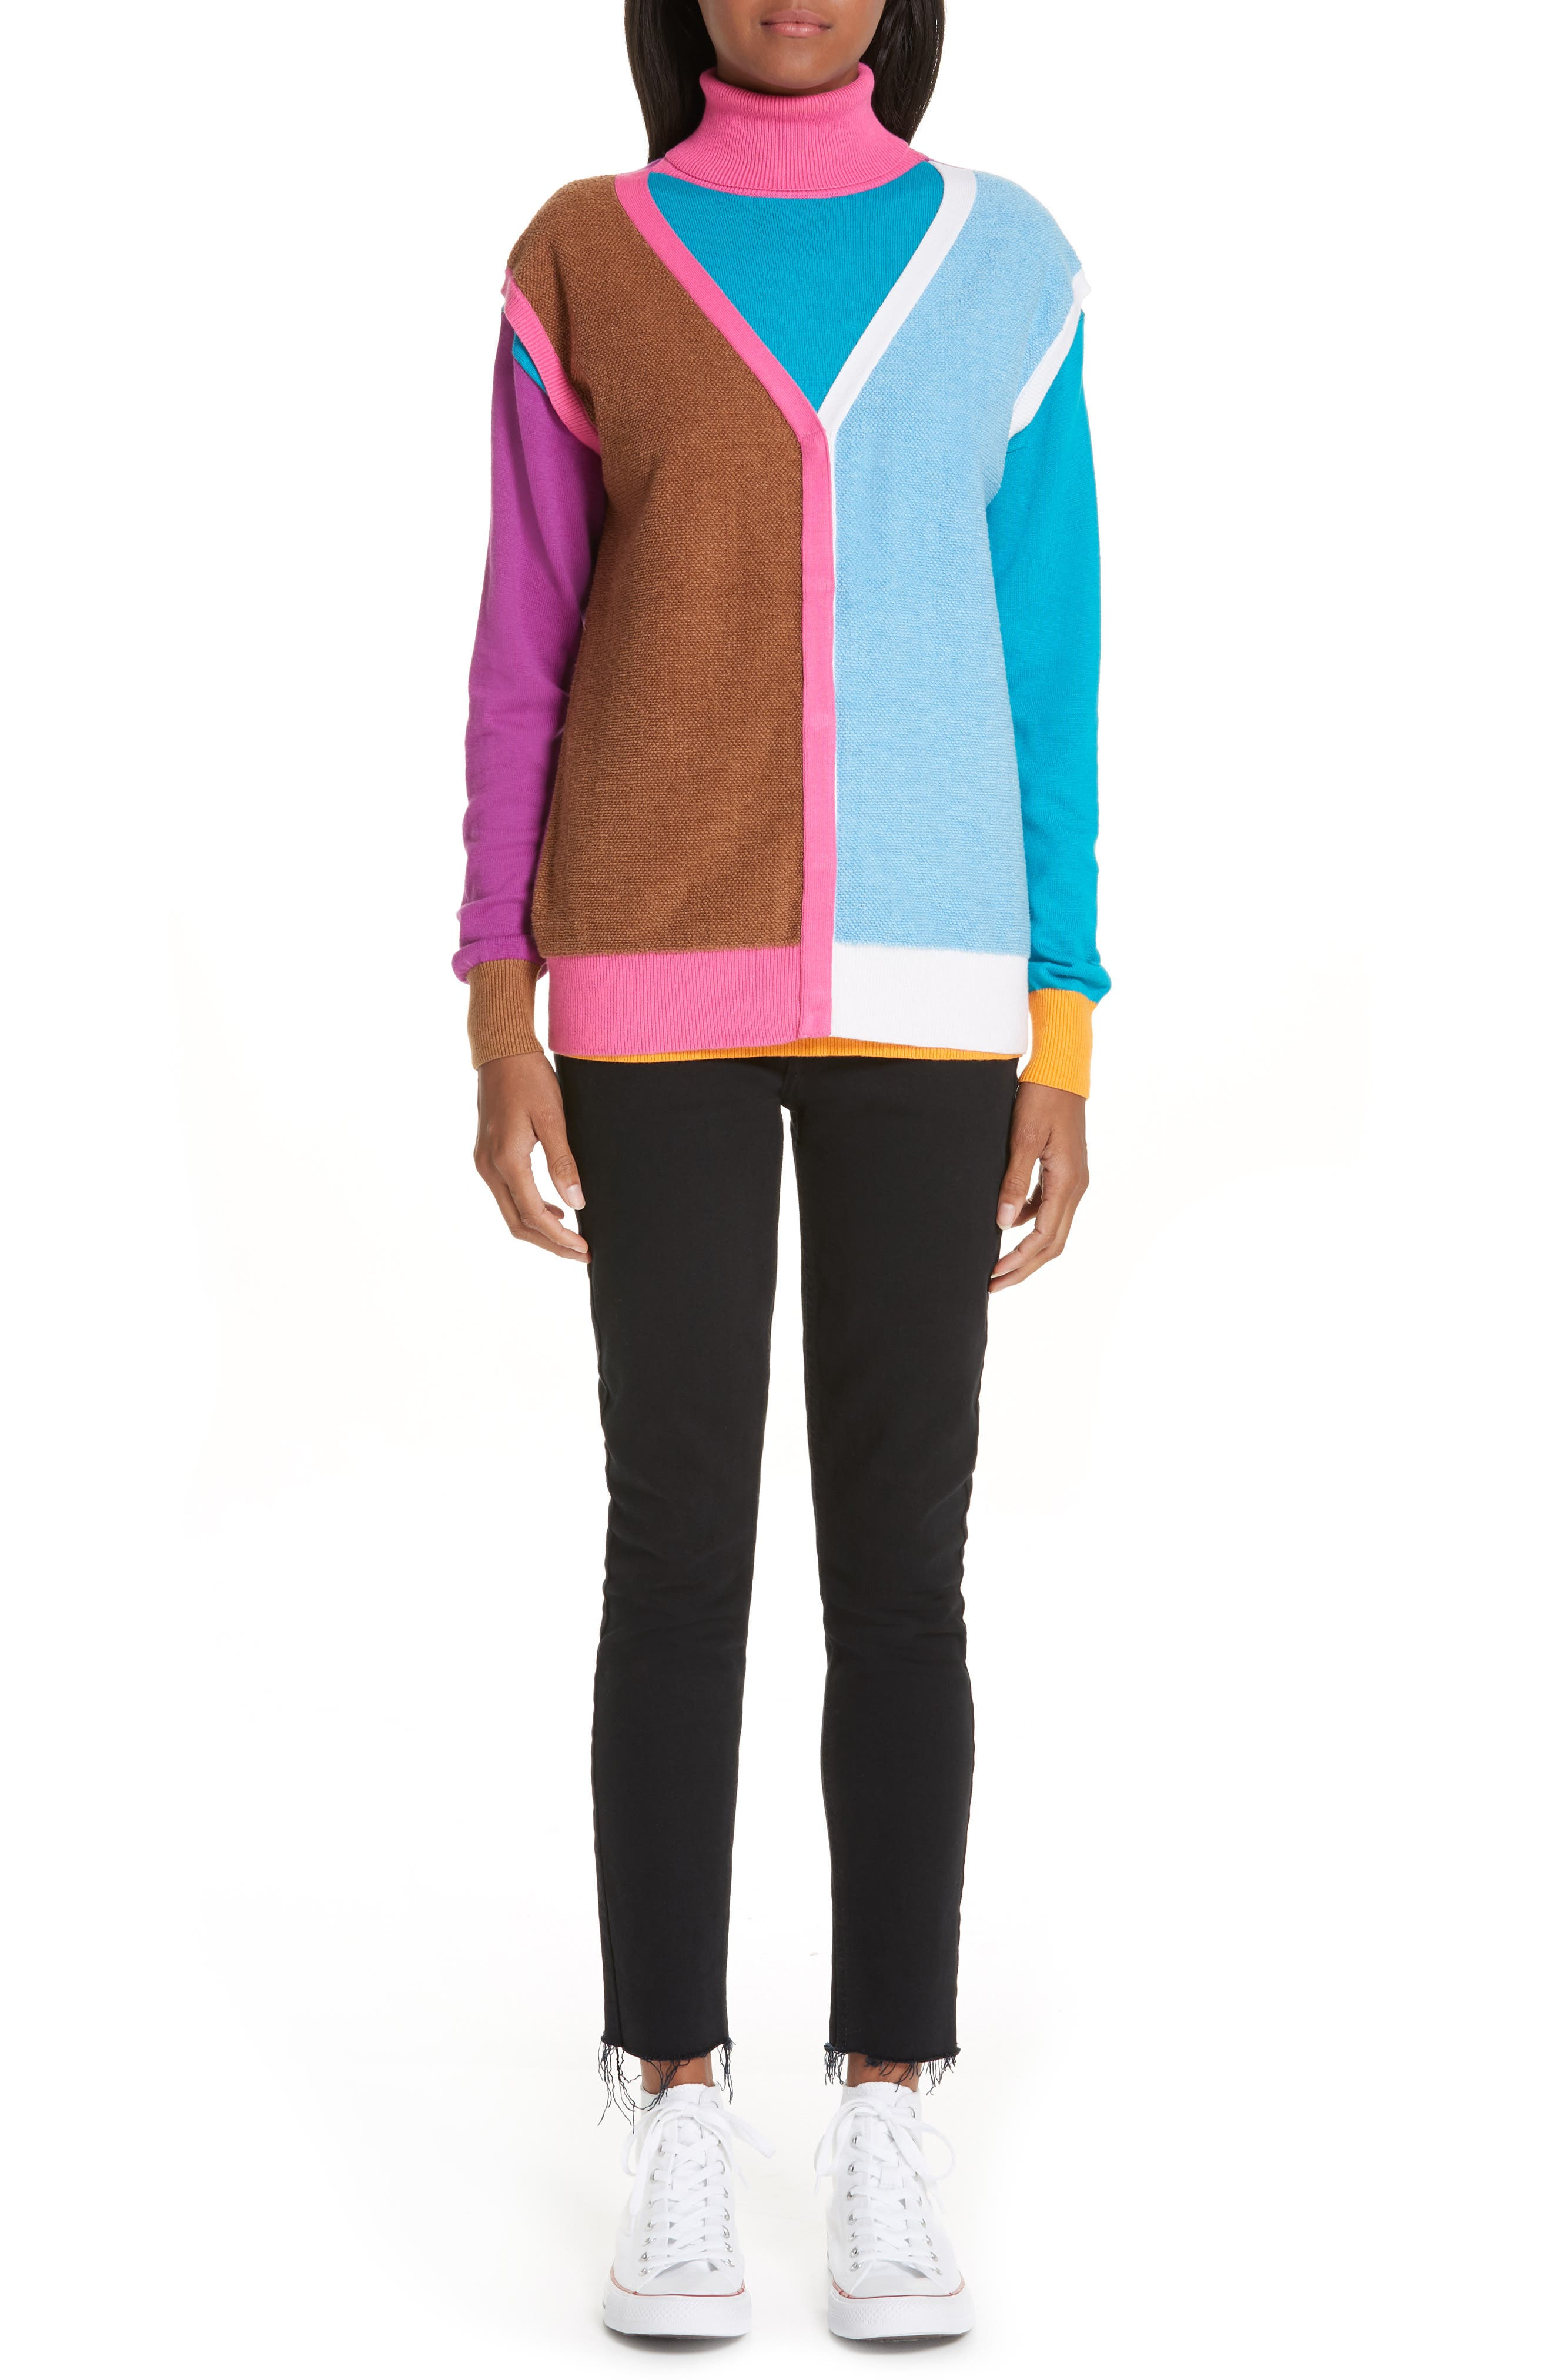 Layered Cotton & Cashmere Sweater,                             Alternate thumbnail 7, color,                             PINK/BLUE/SAND COMBO